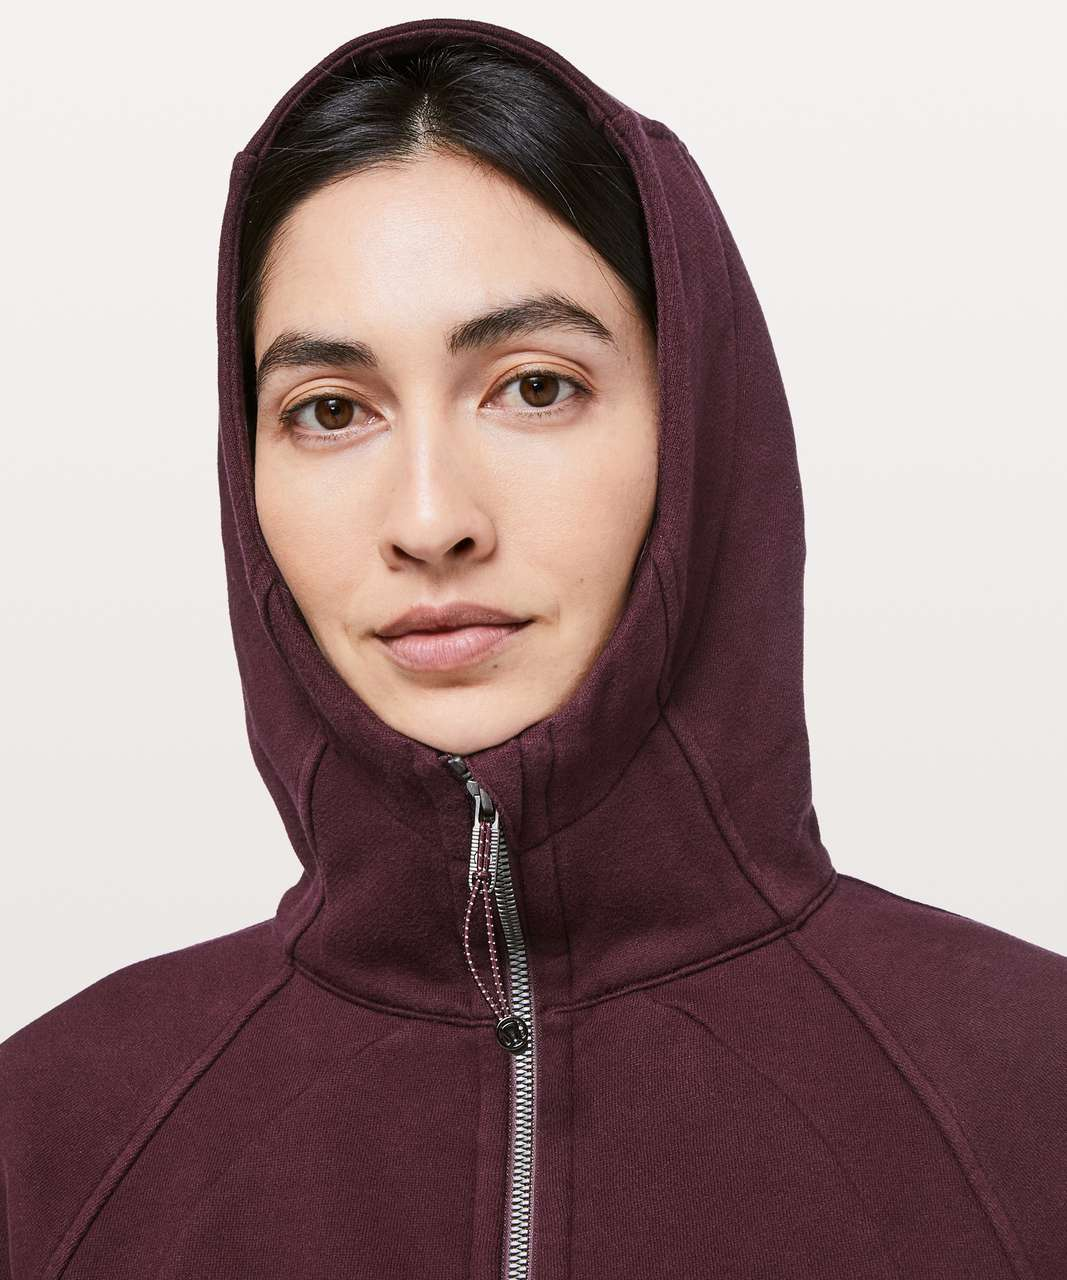 Lululemon Scuba Hoodie *Light Cotton Fleece - Dark Adobe